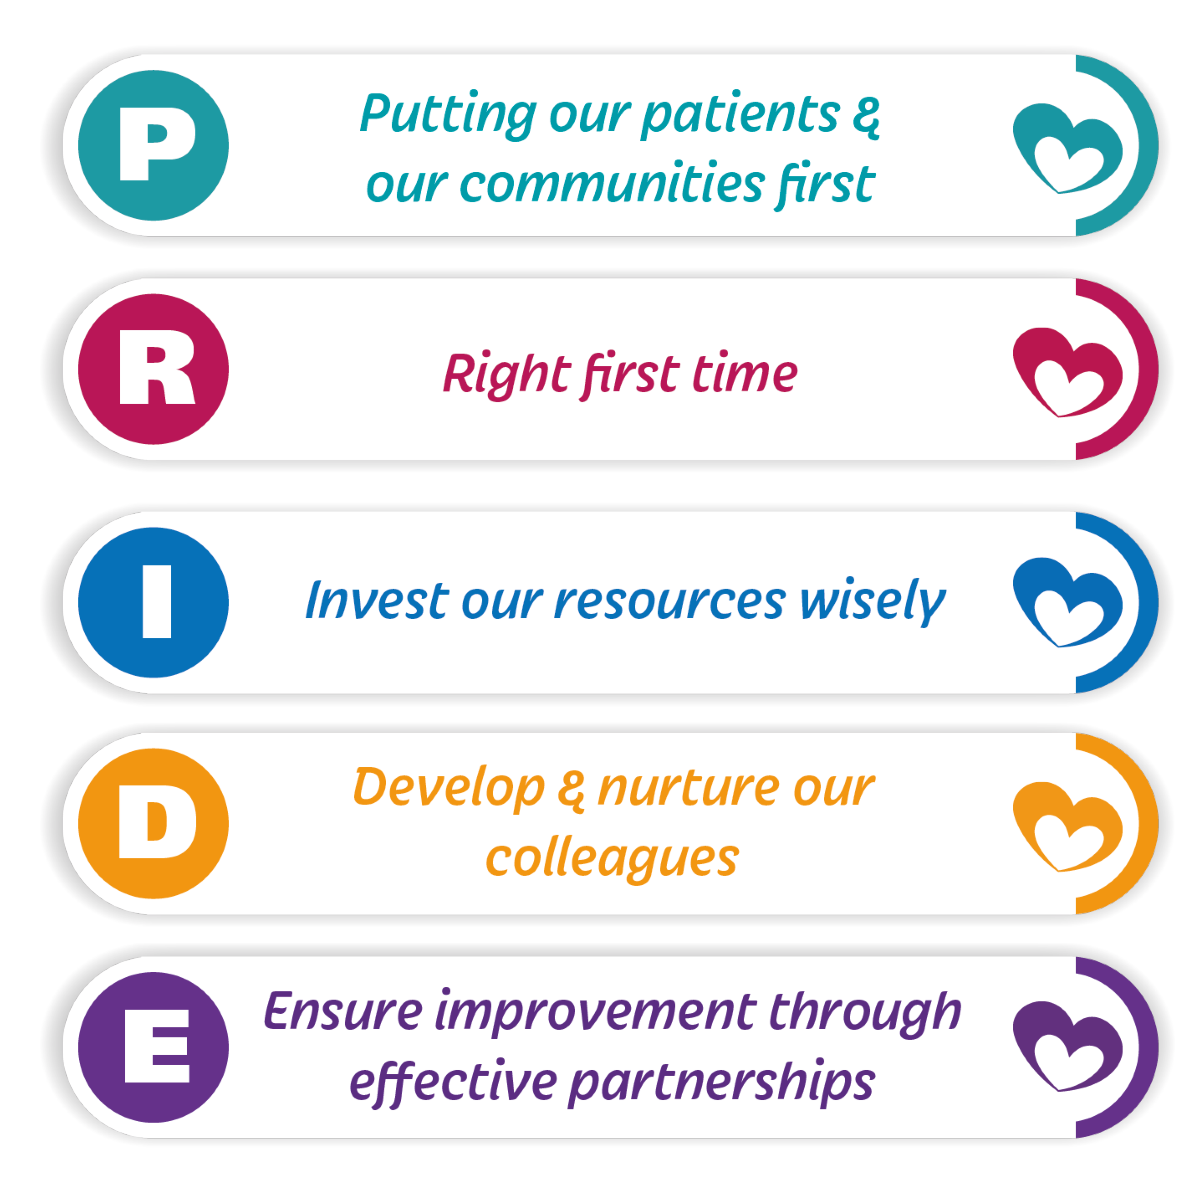 Putting our patients and our communities first. Right first time. Investing our resources wisely. Develop and nurture our colleagues. Ensuring improvement through effective partnerships.